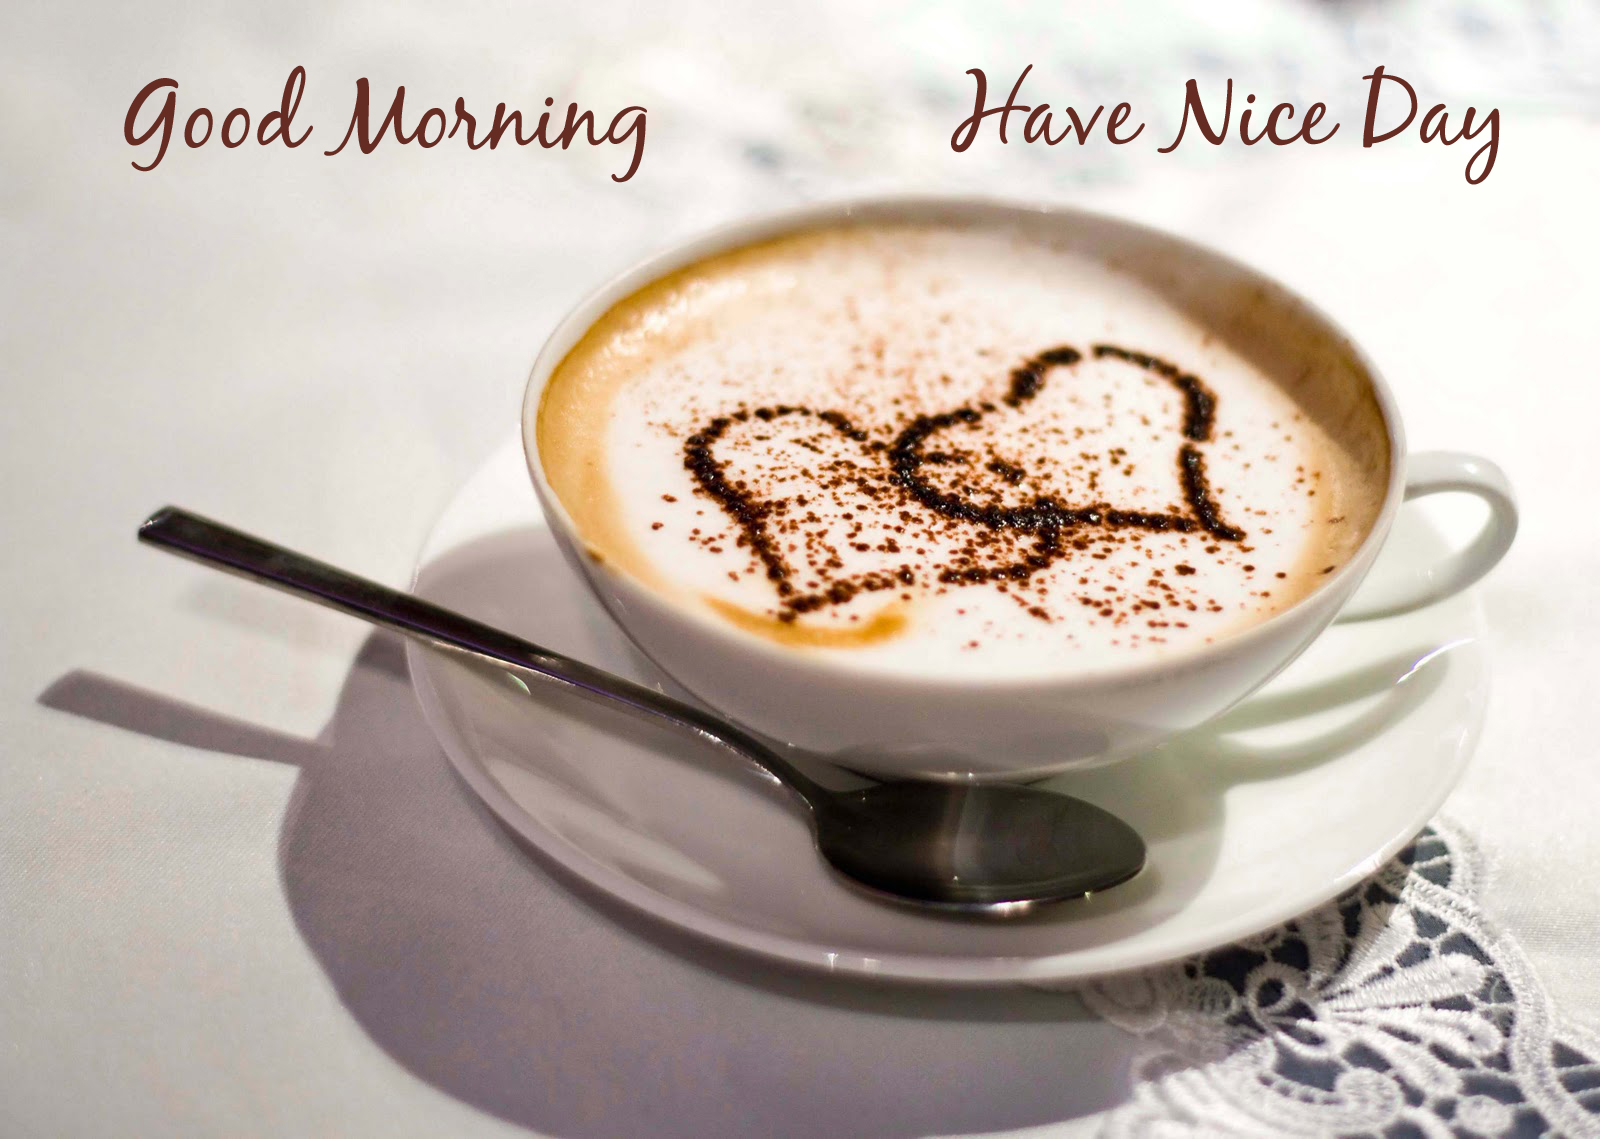 4748858eb6886de2f0a6best-quote-for-morning-with-coffee.jpg